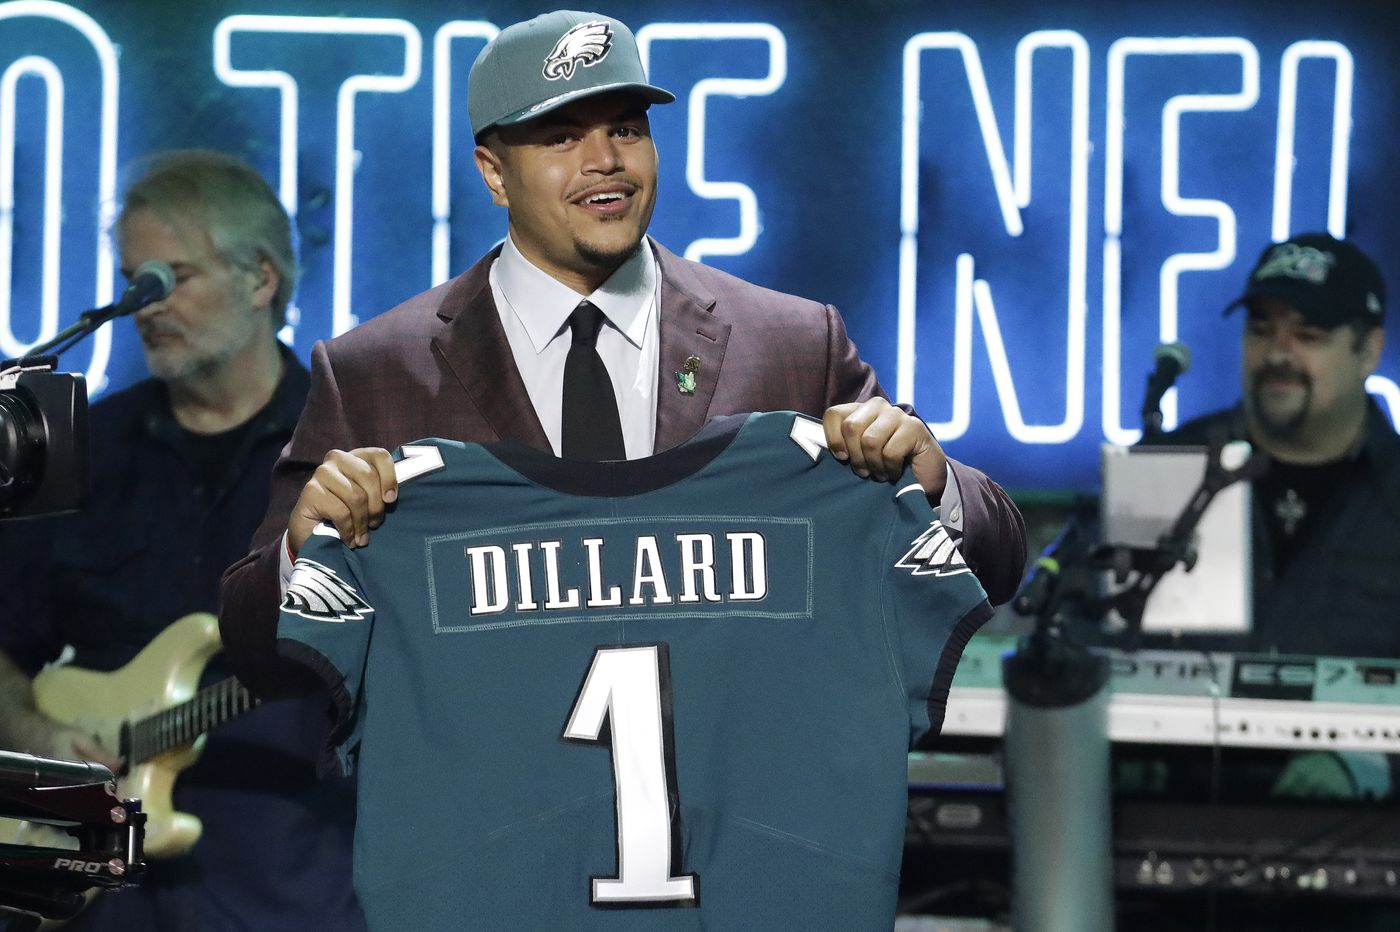 NFL draft: Eagles trade up, select Andre Dillard with 22nd pick